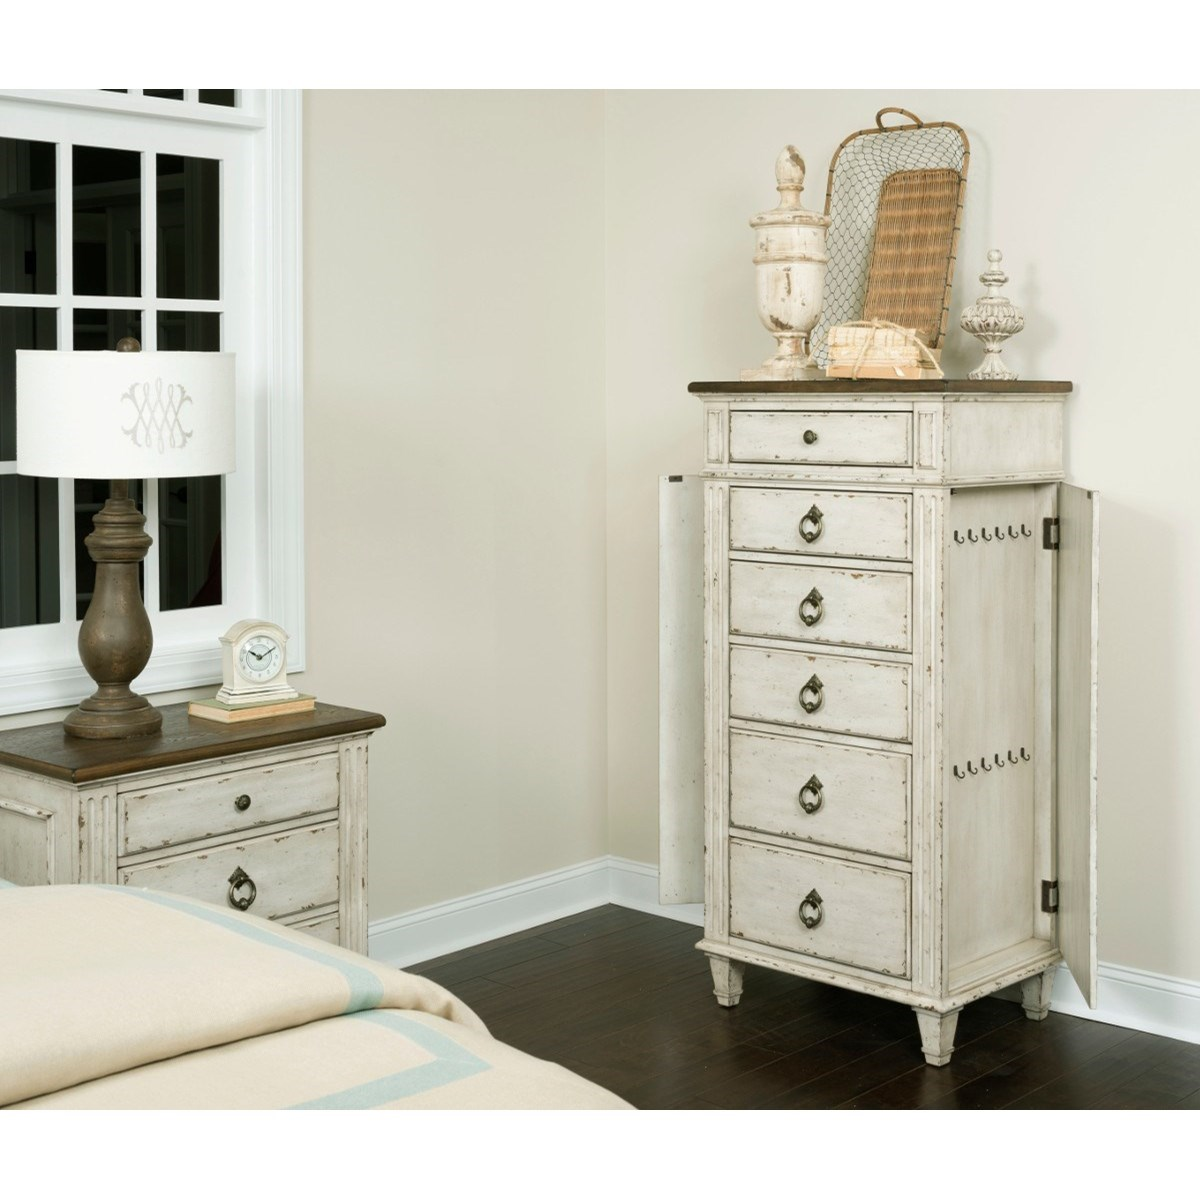 South Gate Lingerie Chest With 6 Soft Close Drawers